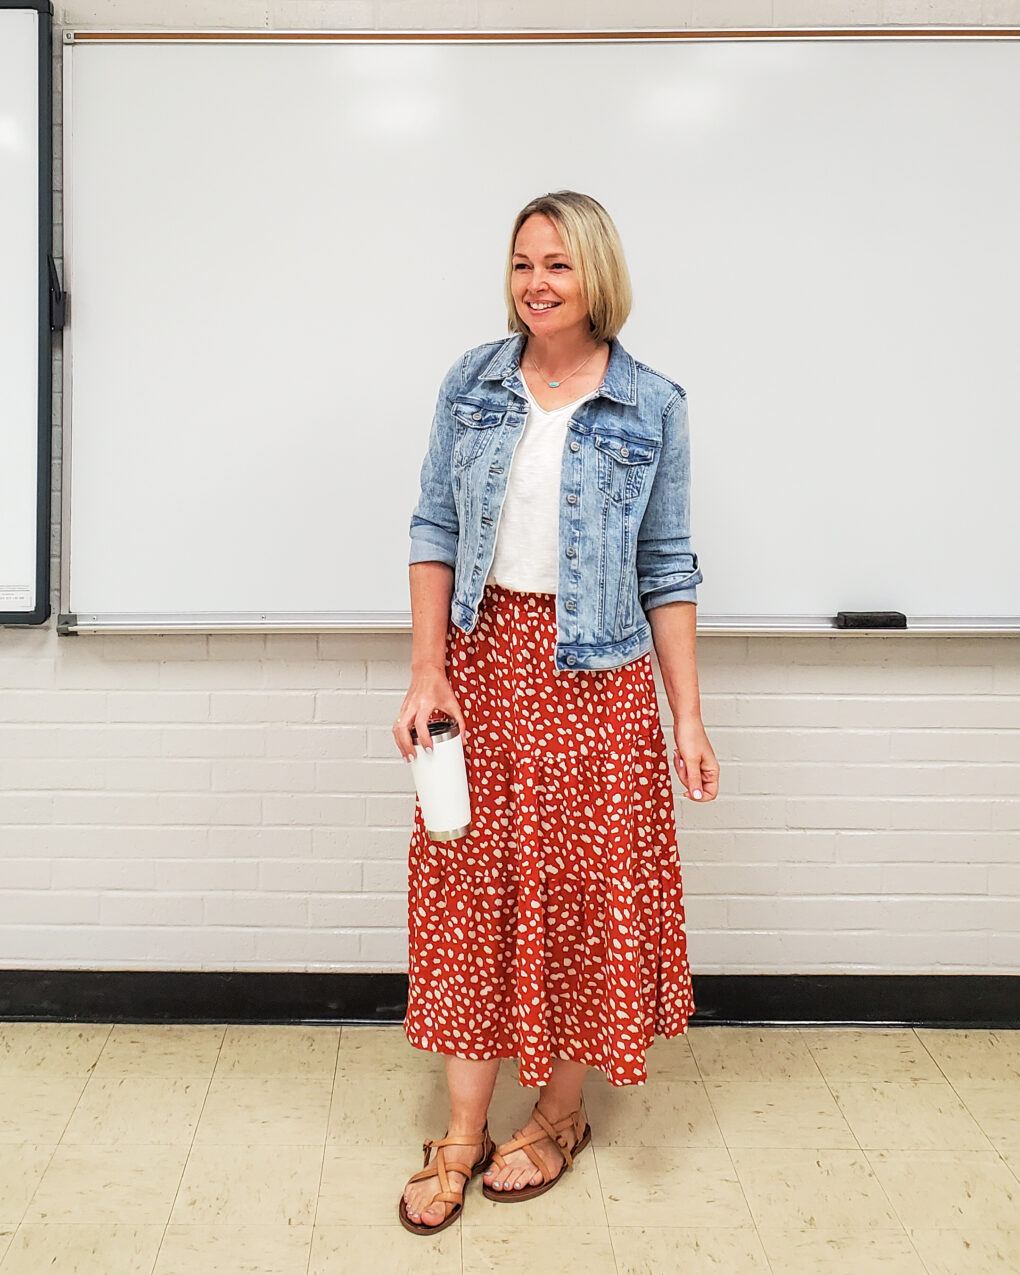 Denim jacket with midi skirt outfit